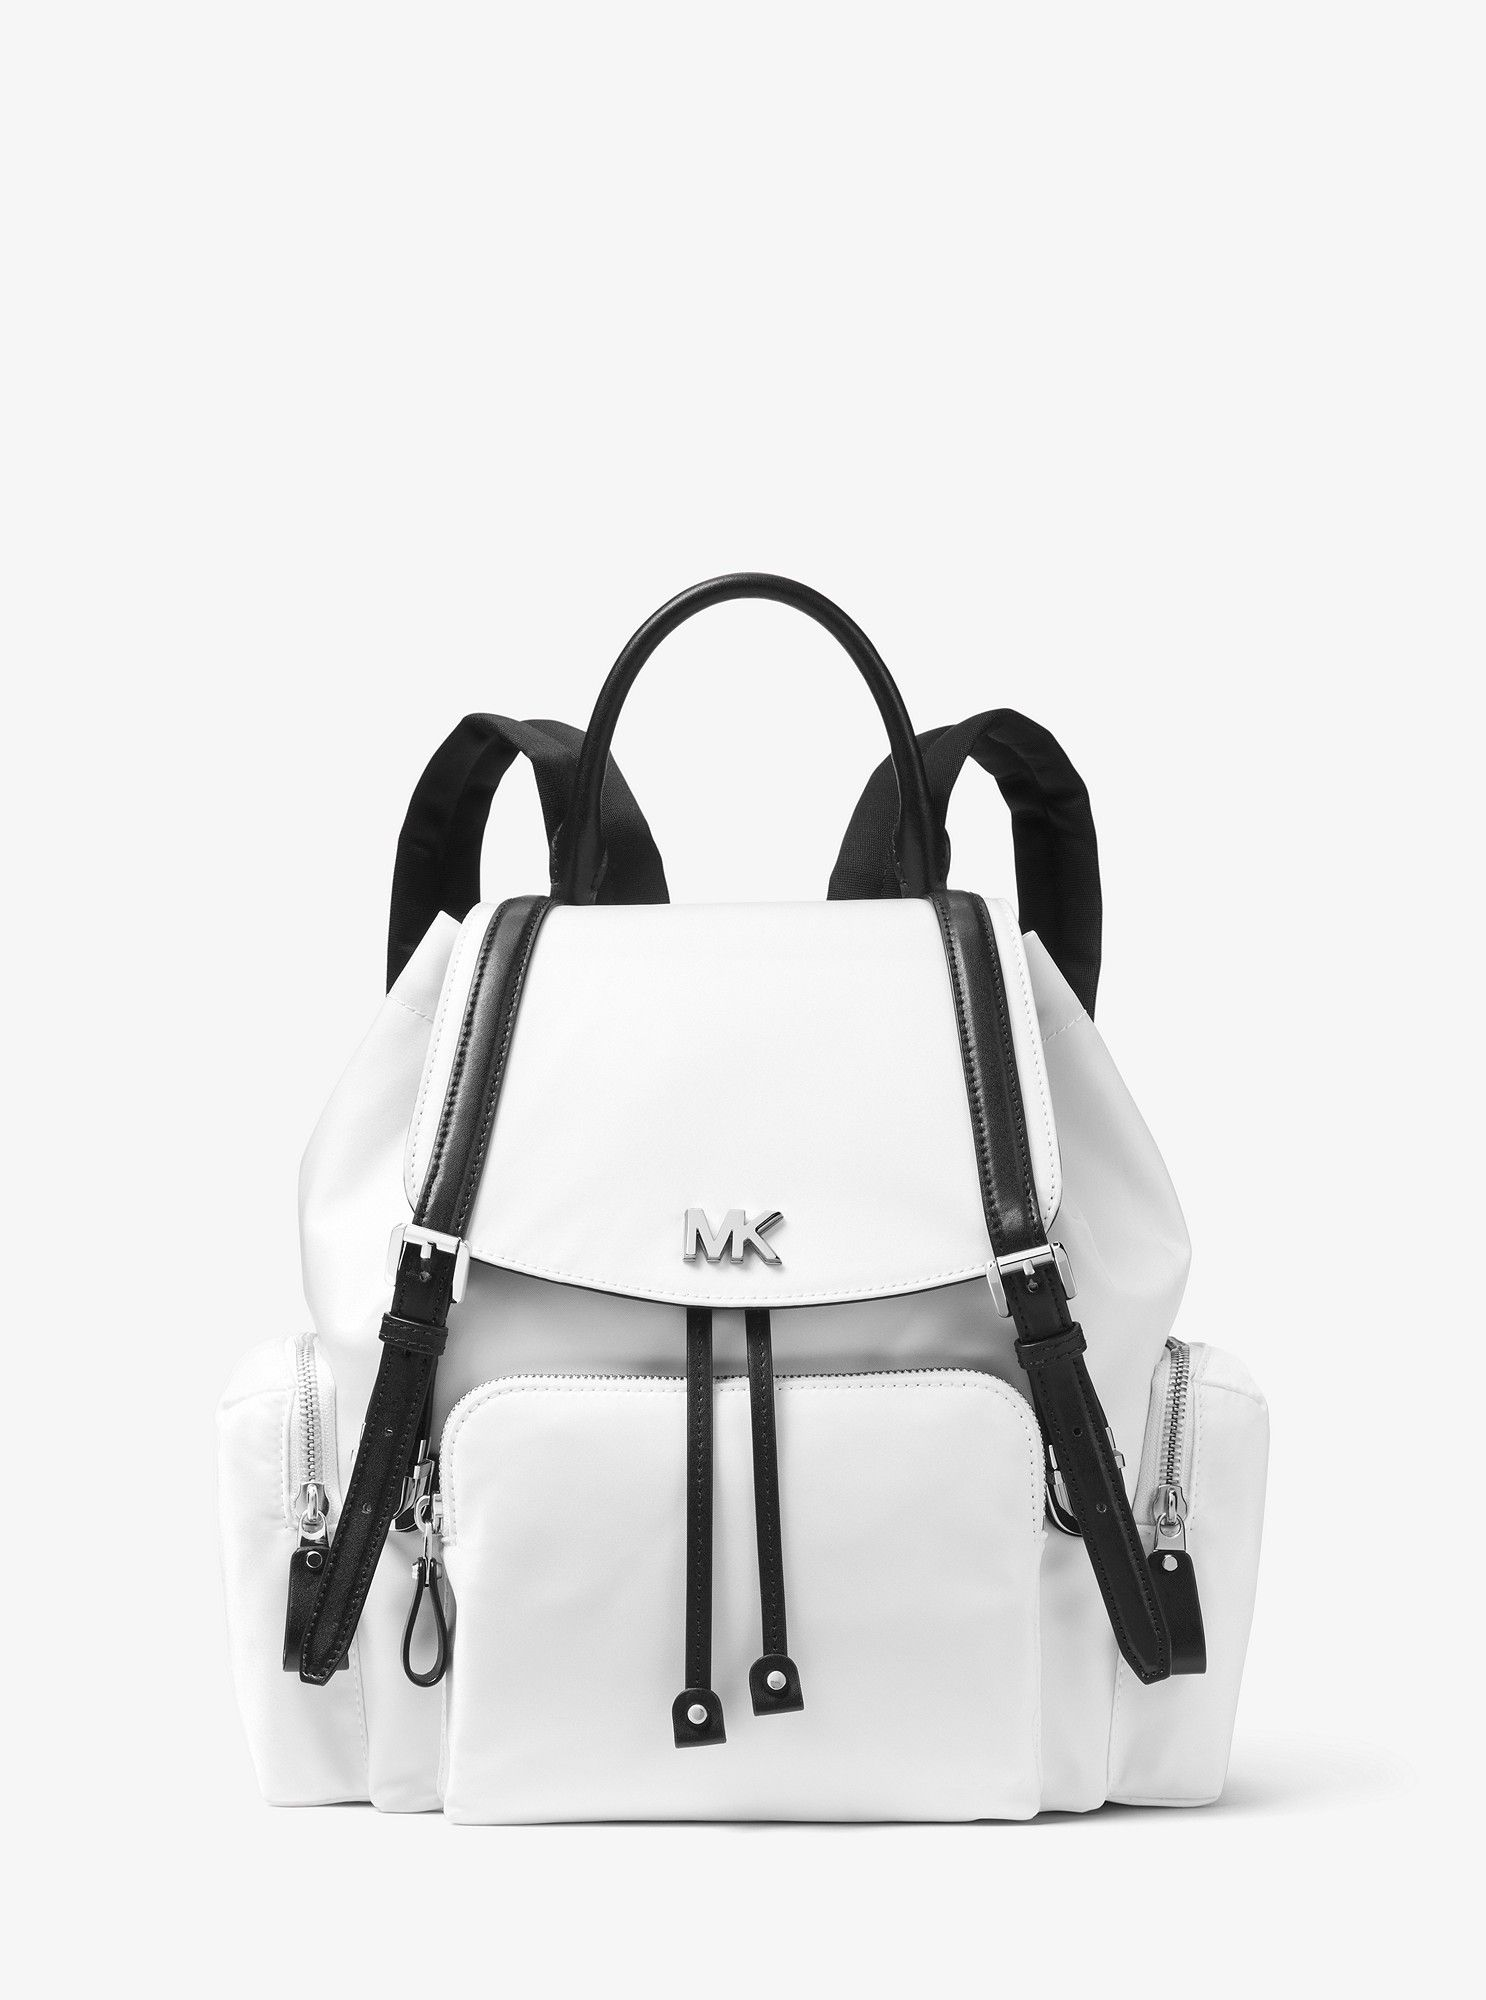 52f9680ad83a Michael Kors Beacon Medium Nylon Backpack - Optic White/Blk ...